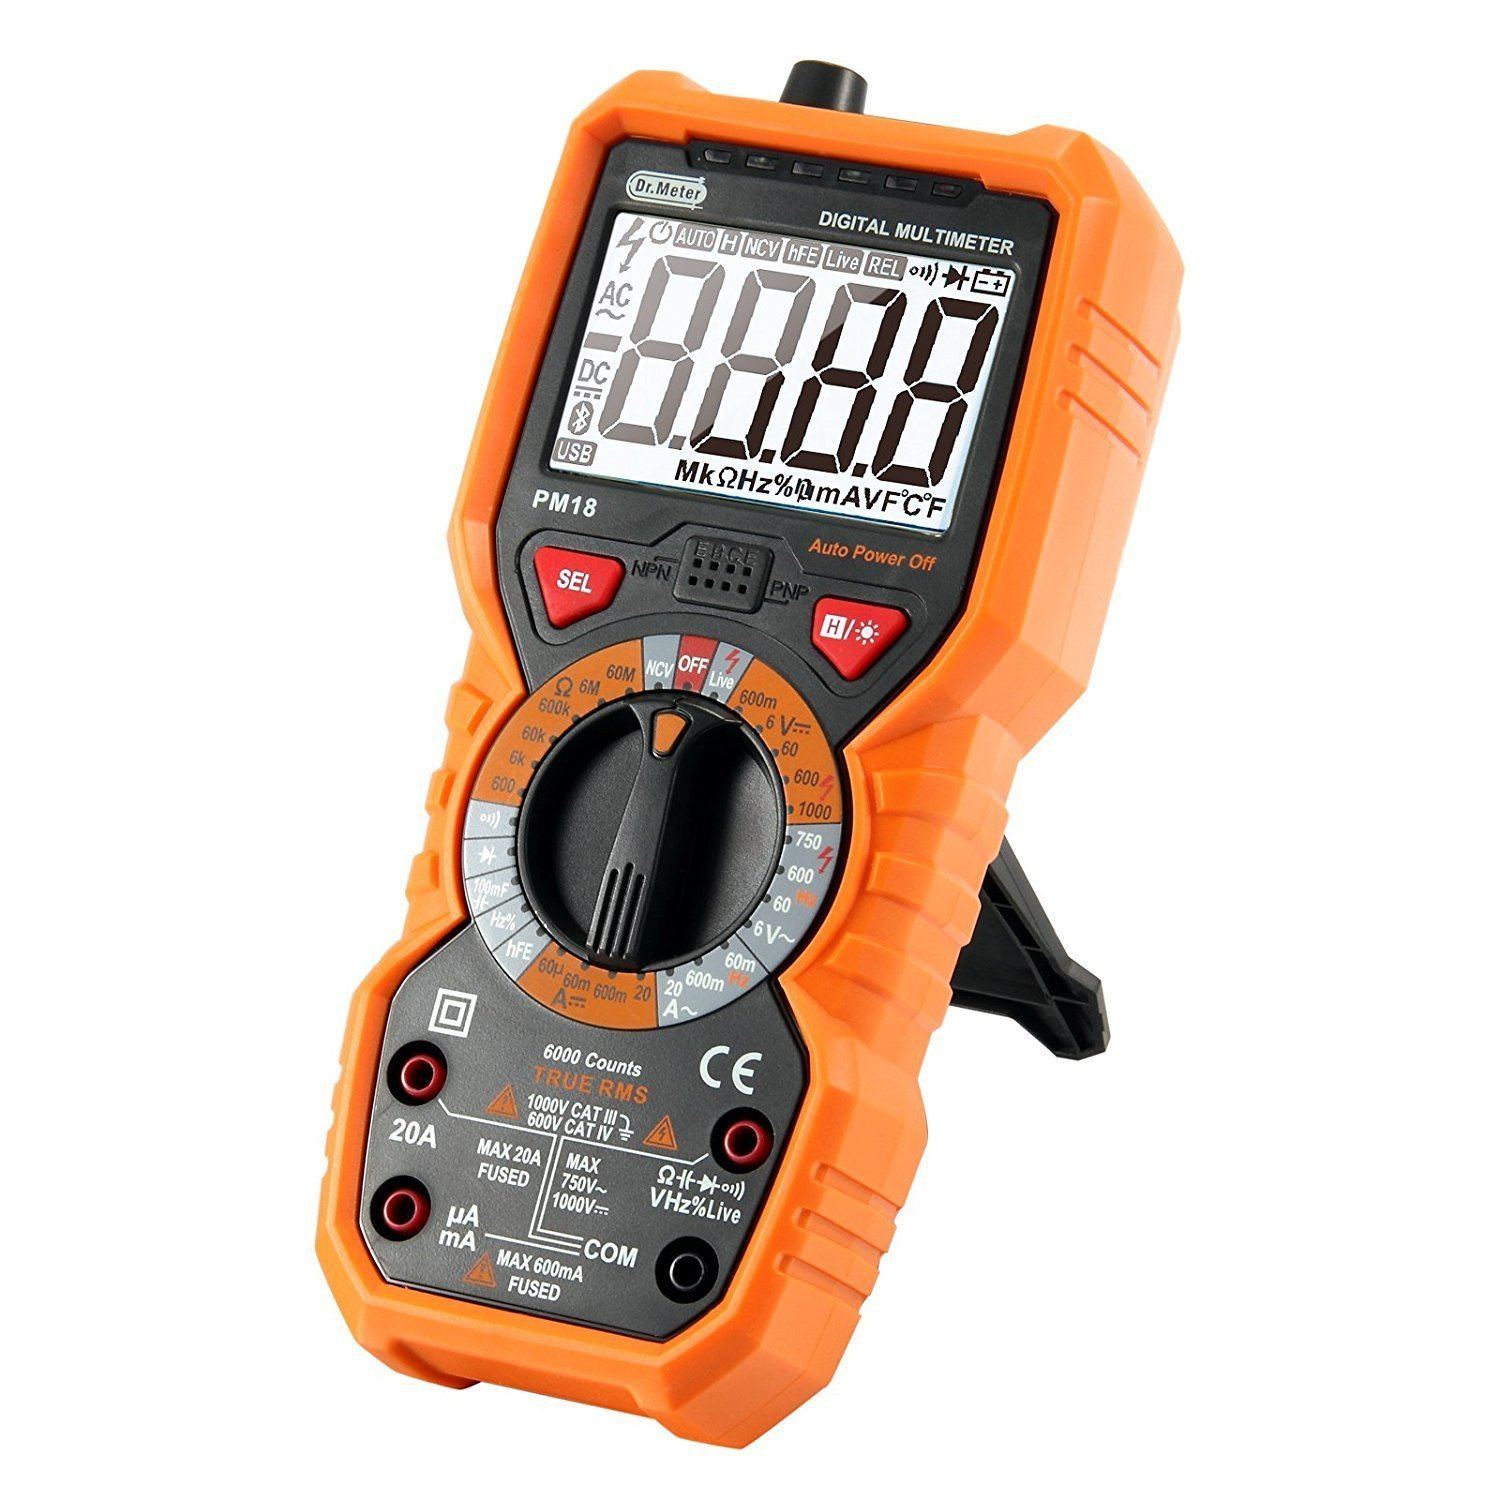 [Digital Multimeters] Dr.meter Digital Multimeter Trms 6000 Counts Tester Non-Contact Voltage Detection Multi Meter, PM18 by Dr.meter (Image #1)